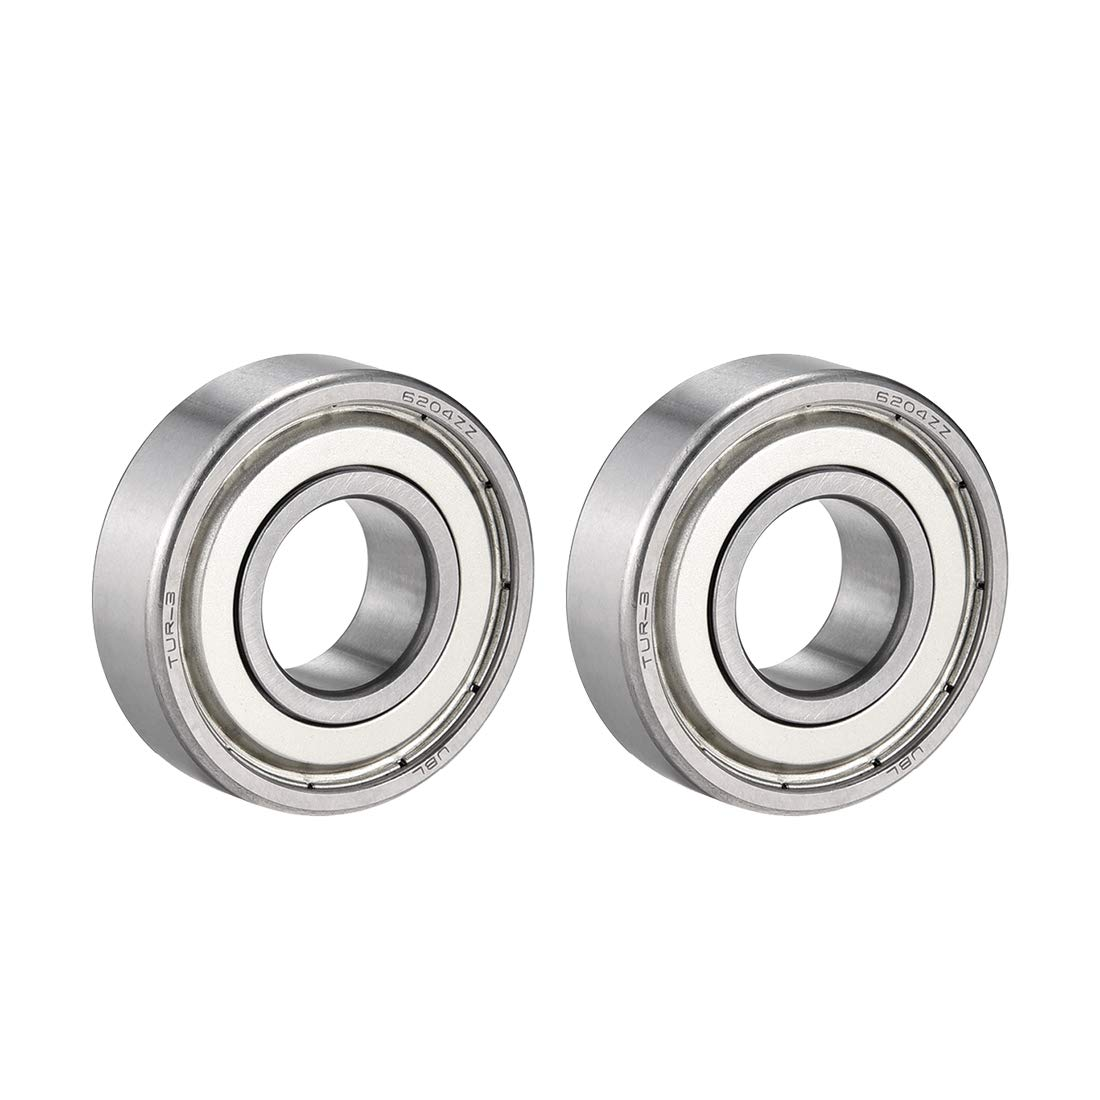 uxcell 6204Z Metal Sealed Deep Groove Radial Ball Bearing 20x47x14mm